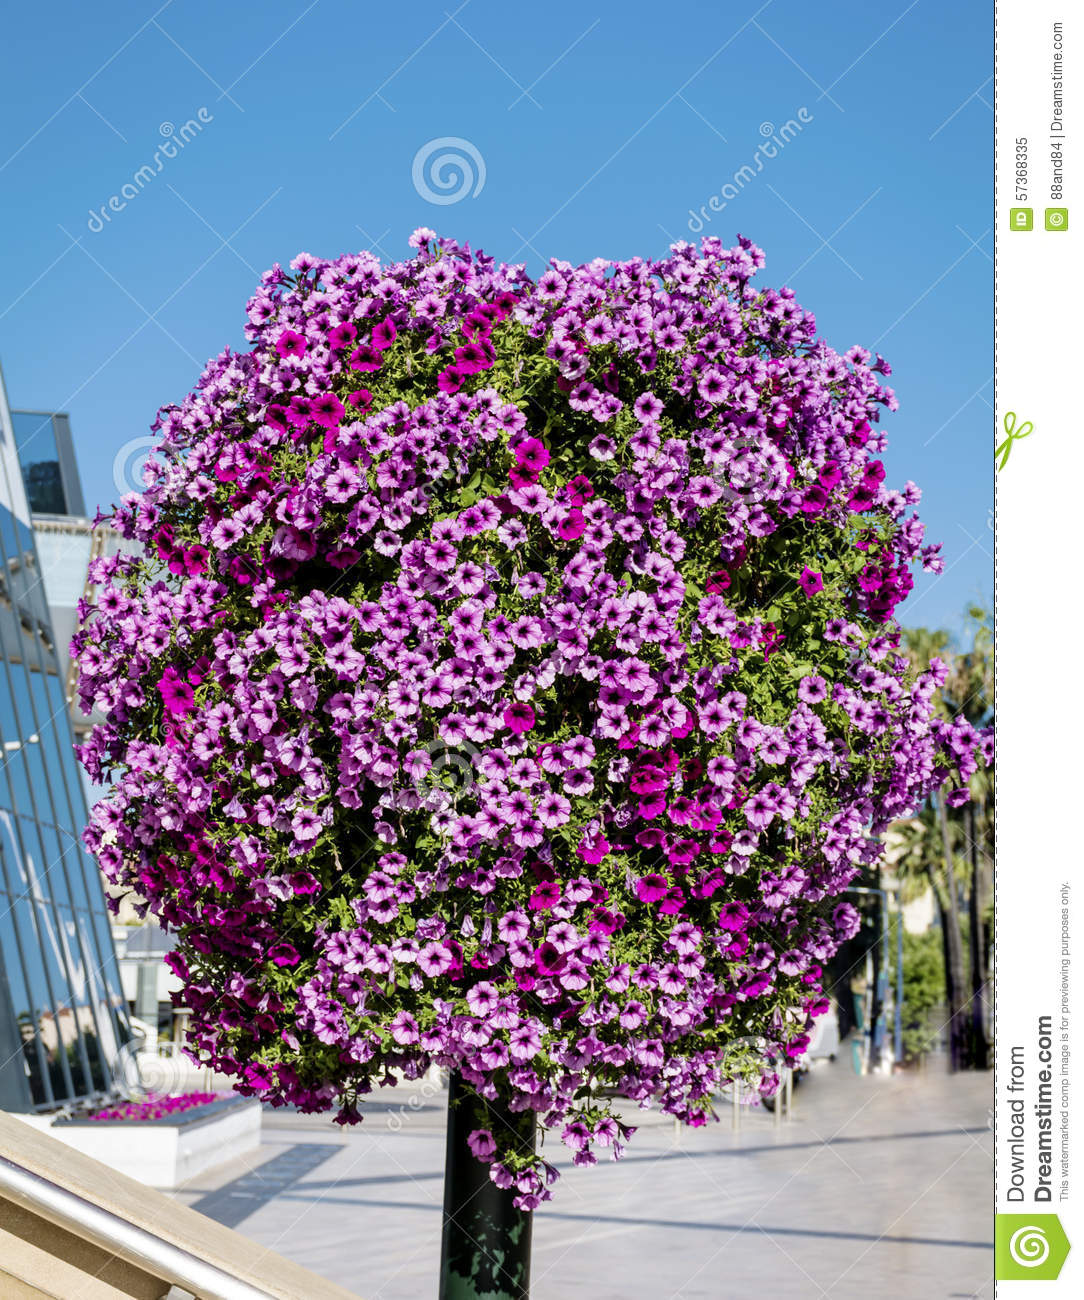 Street light with colorful hanging petunia flower baskets for Colorful hanging planters